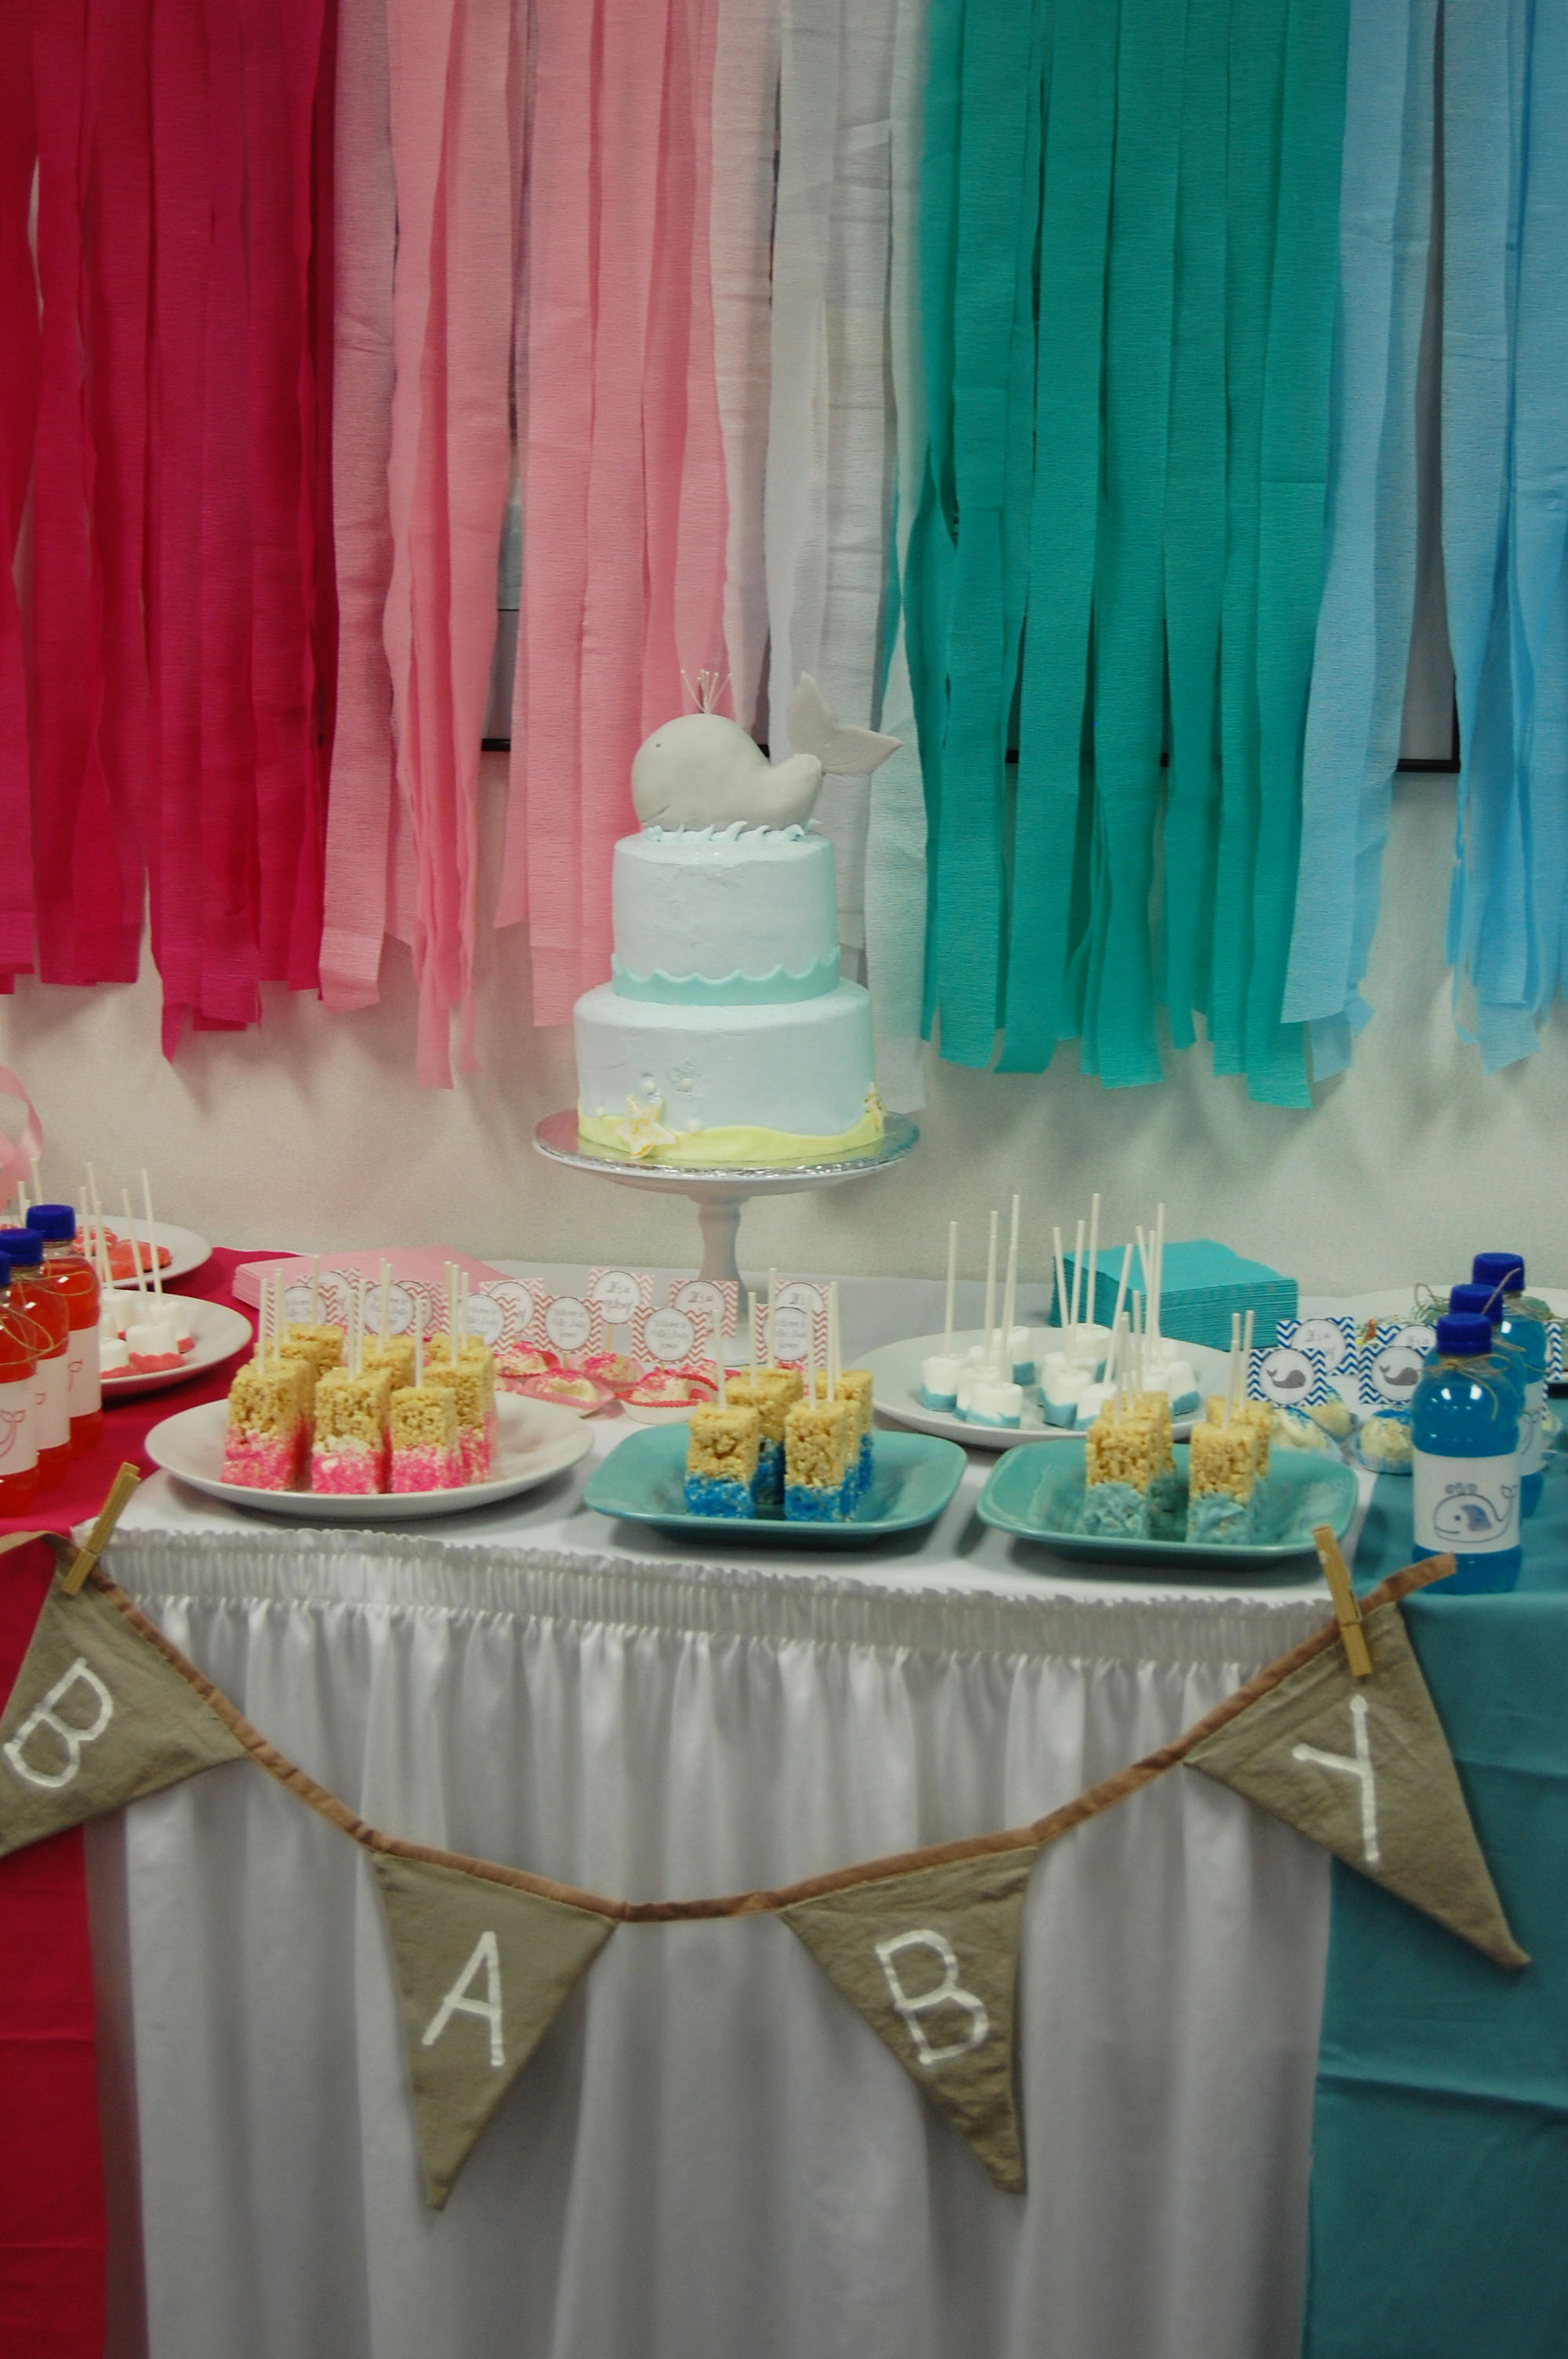 A Whaley Cute Gender Neutral Baby Shower  Project Nursery